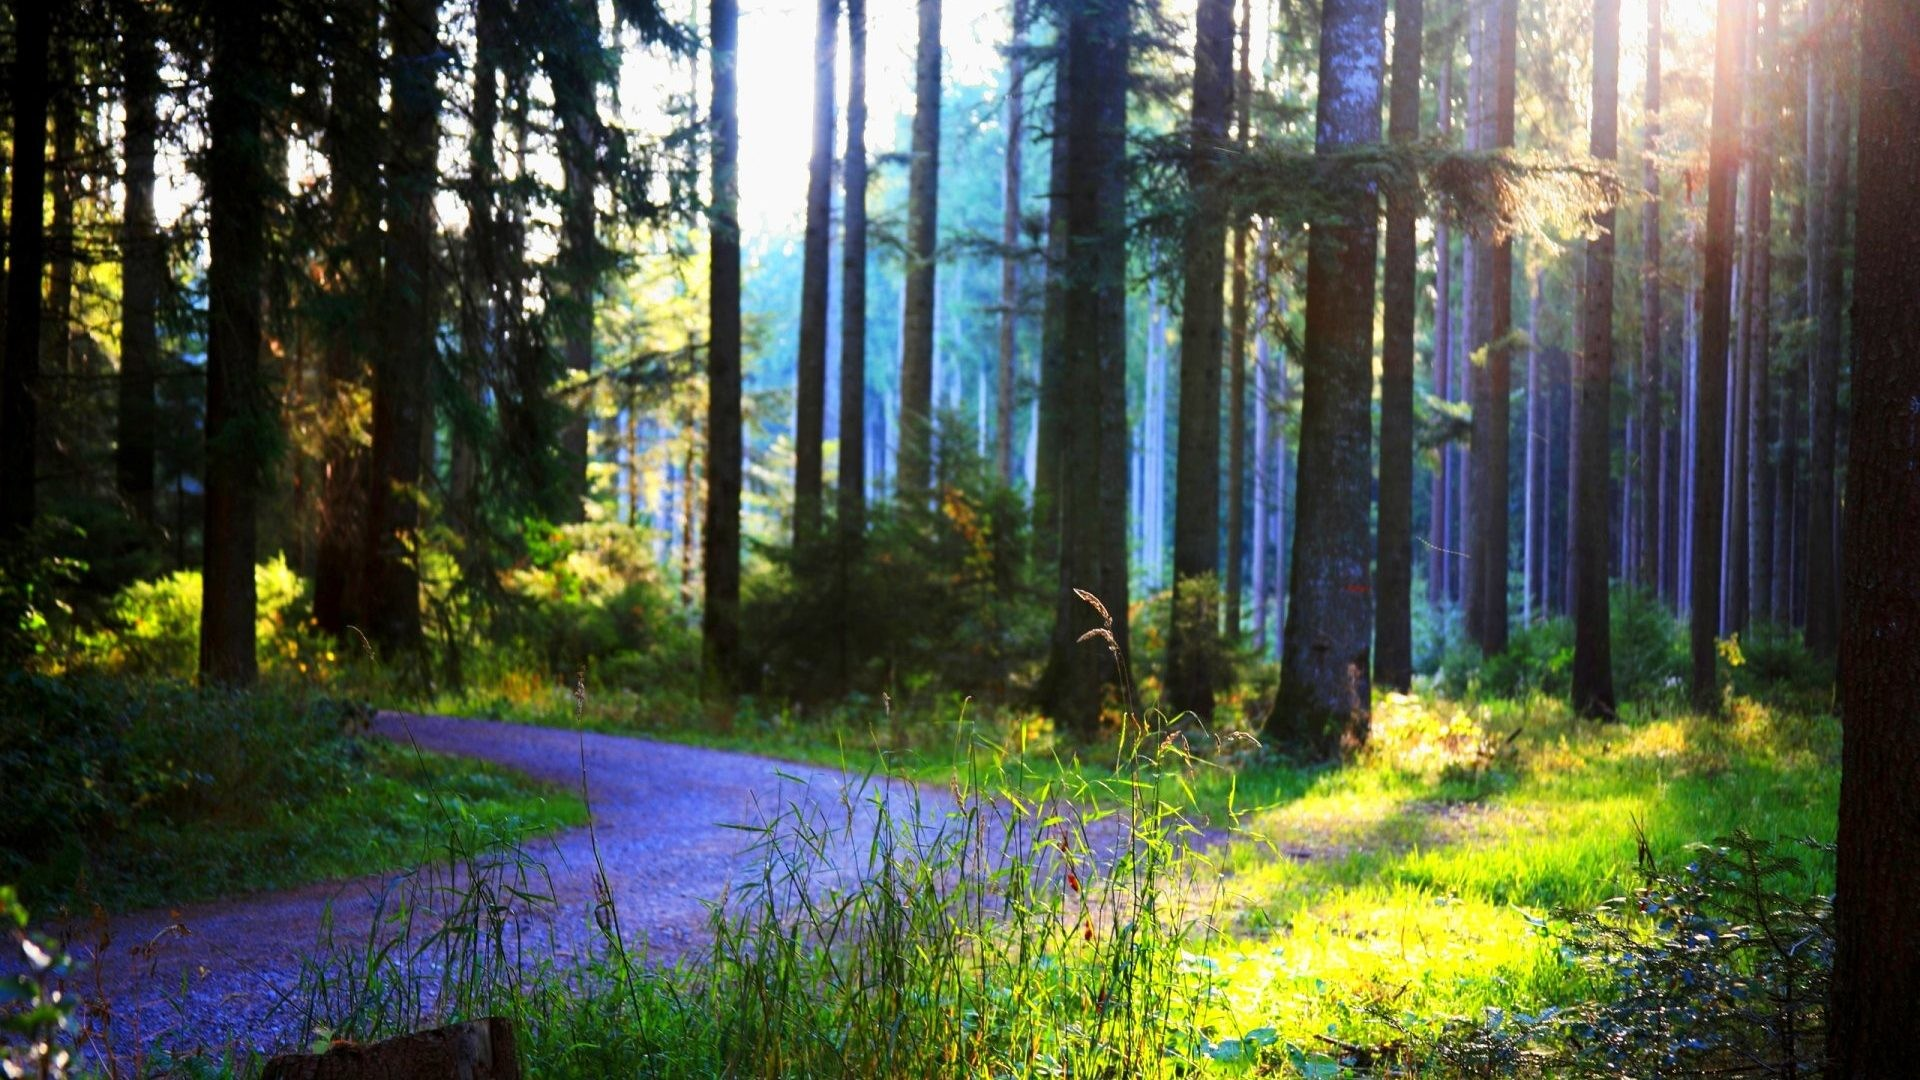 Tree Landscape Forest Nature Trees Hd Wallpapers 1080p 3d Detail